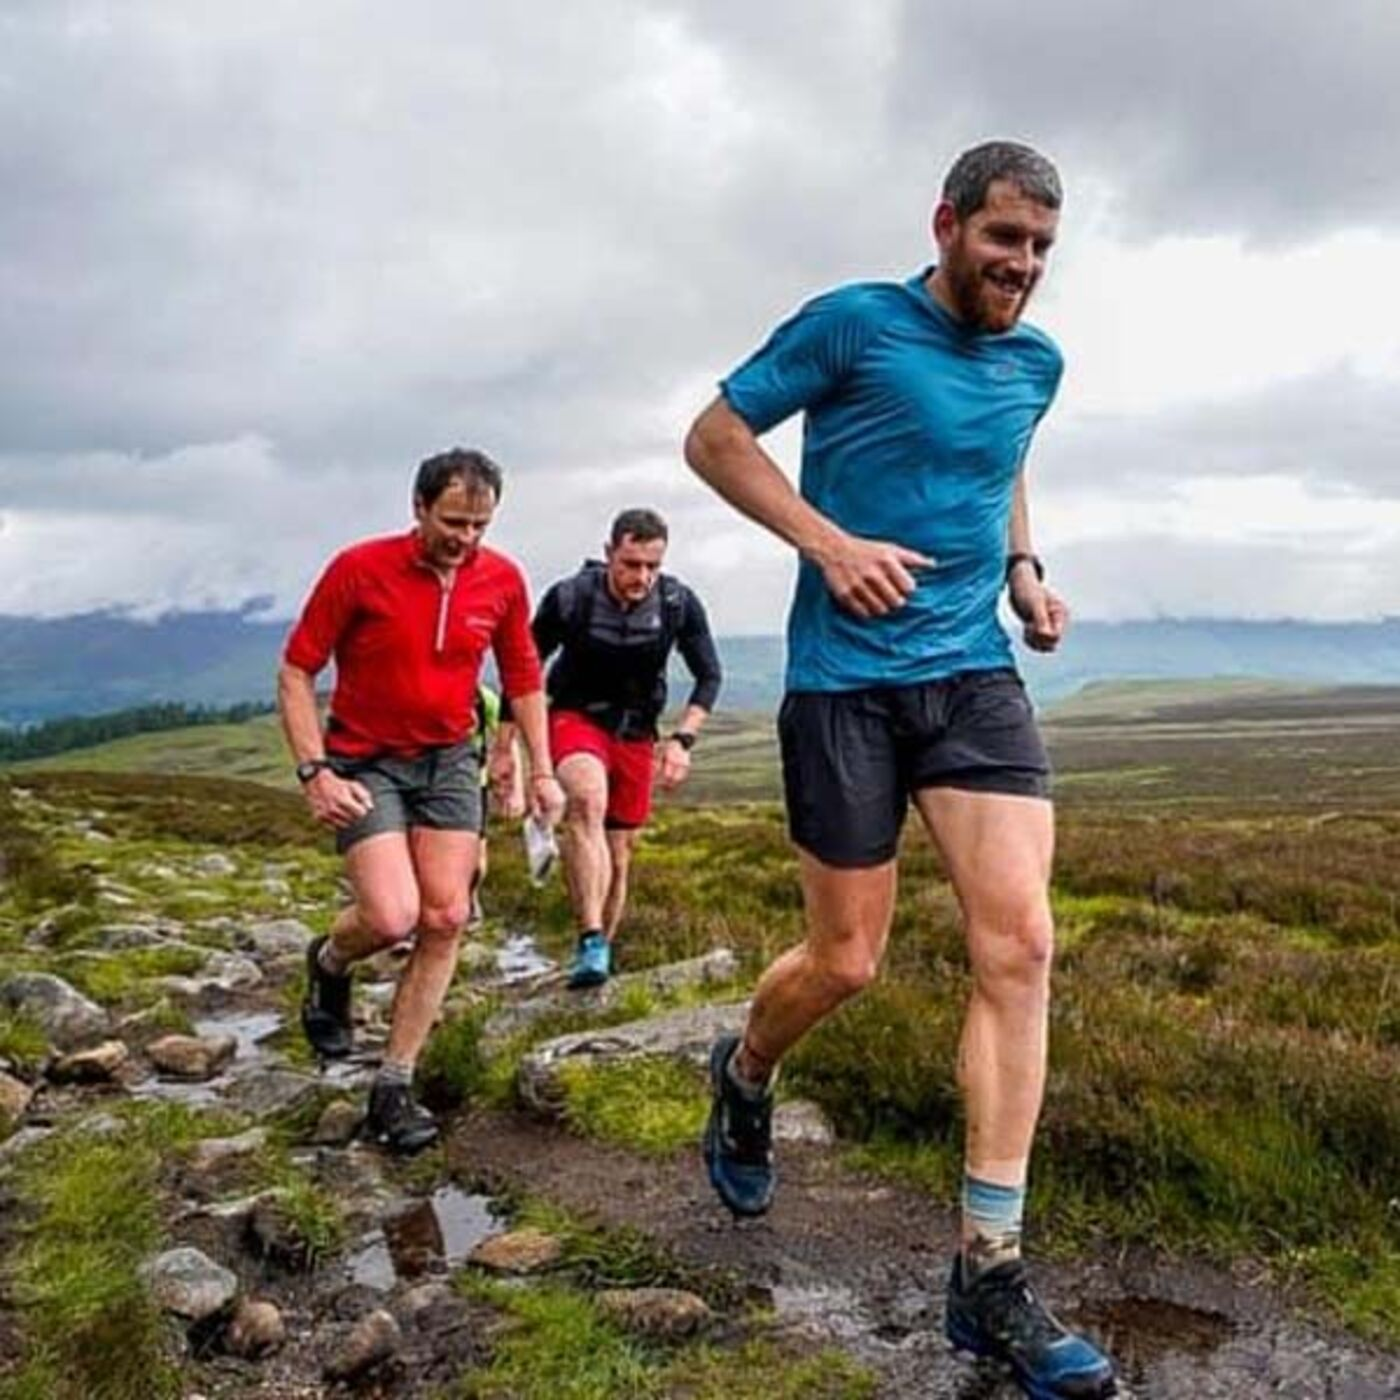 Ep 248 - Running the Wainwrights with Paul Tierney